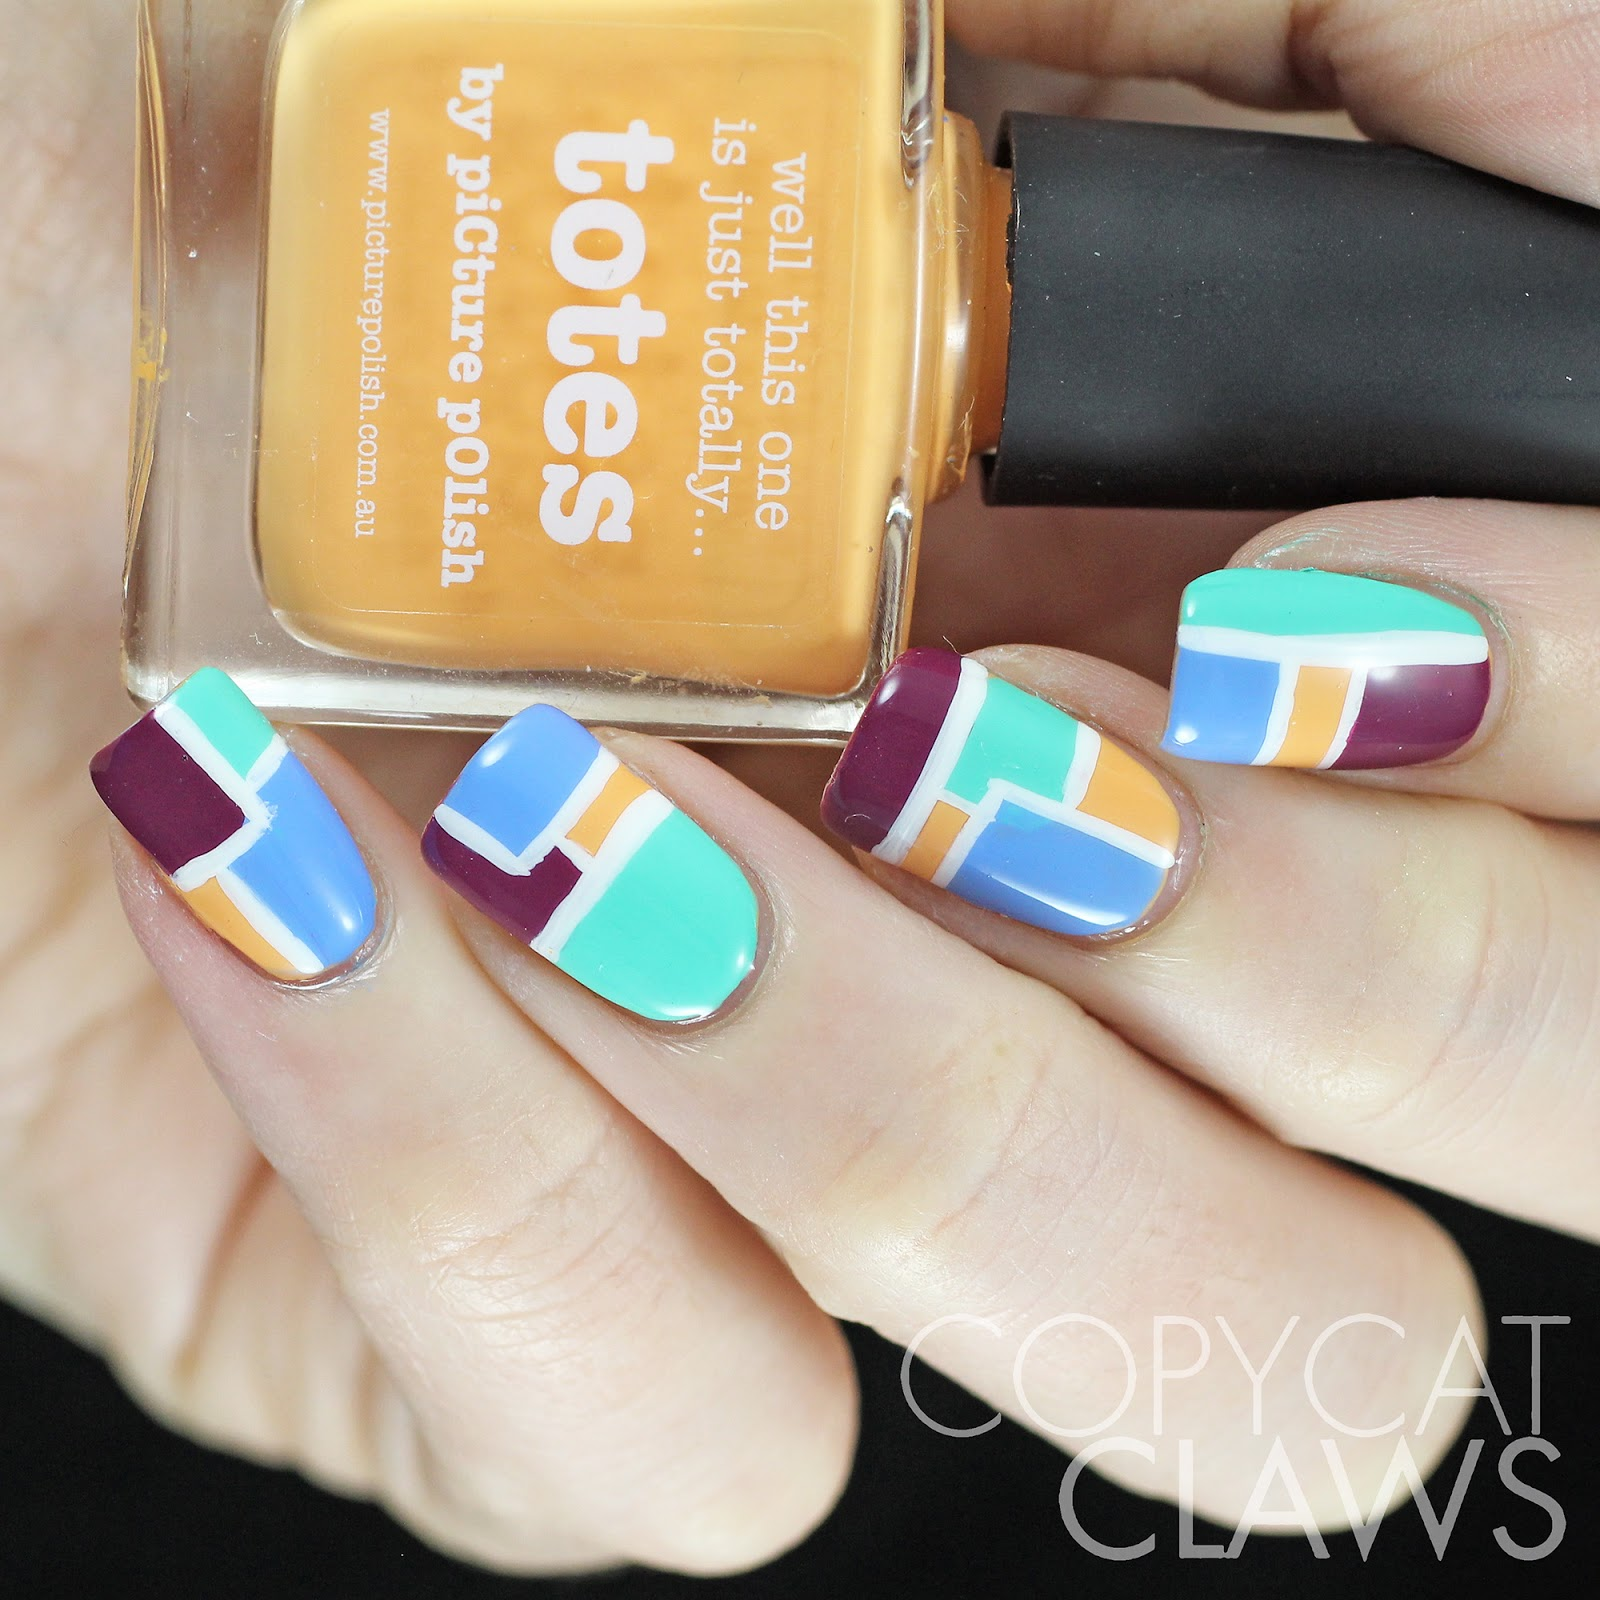 Copycat Claws: The Digit-al Dozen Does Geometric: Day 4